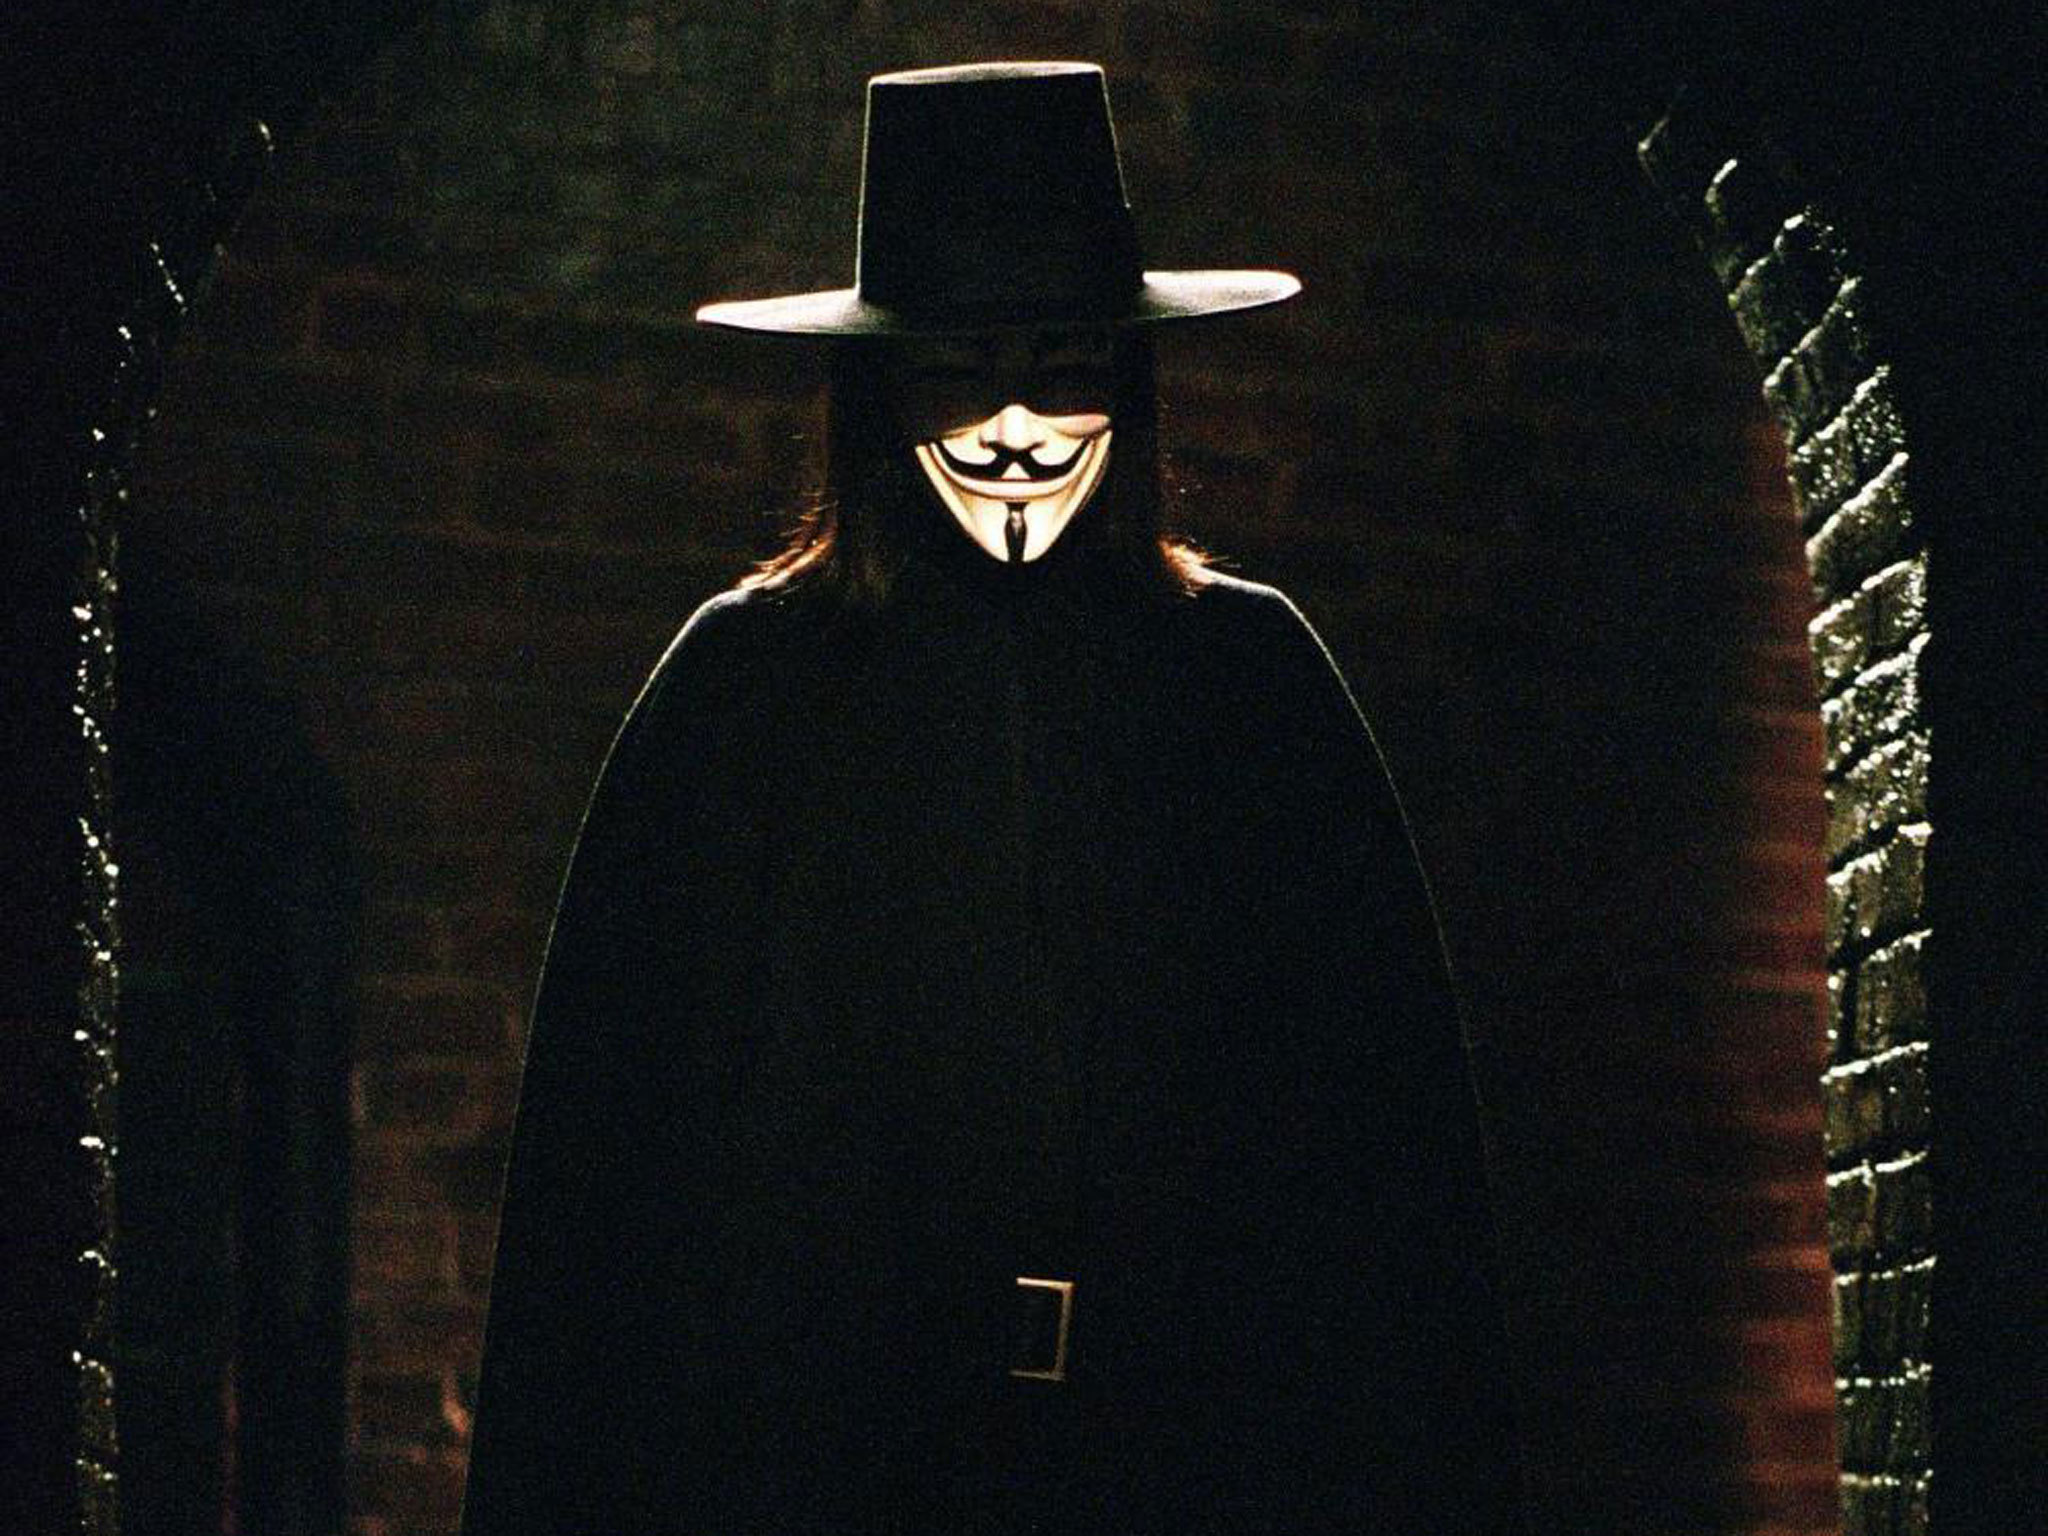 The 50 best comic book movies, v for vendetta